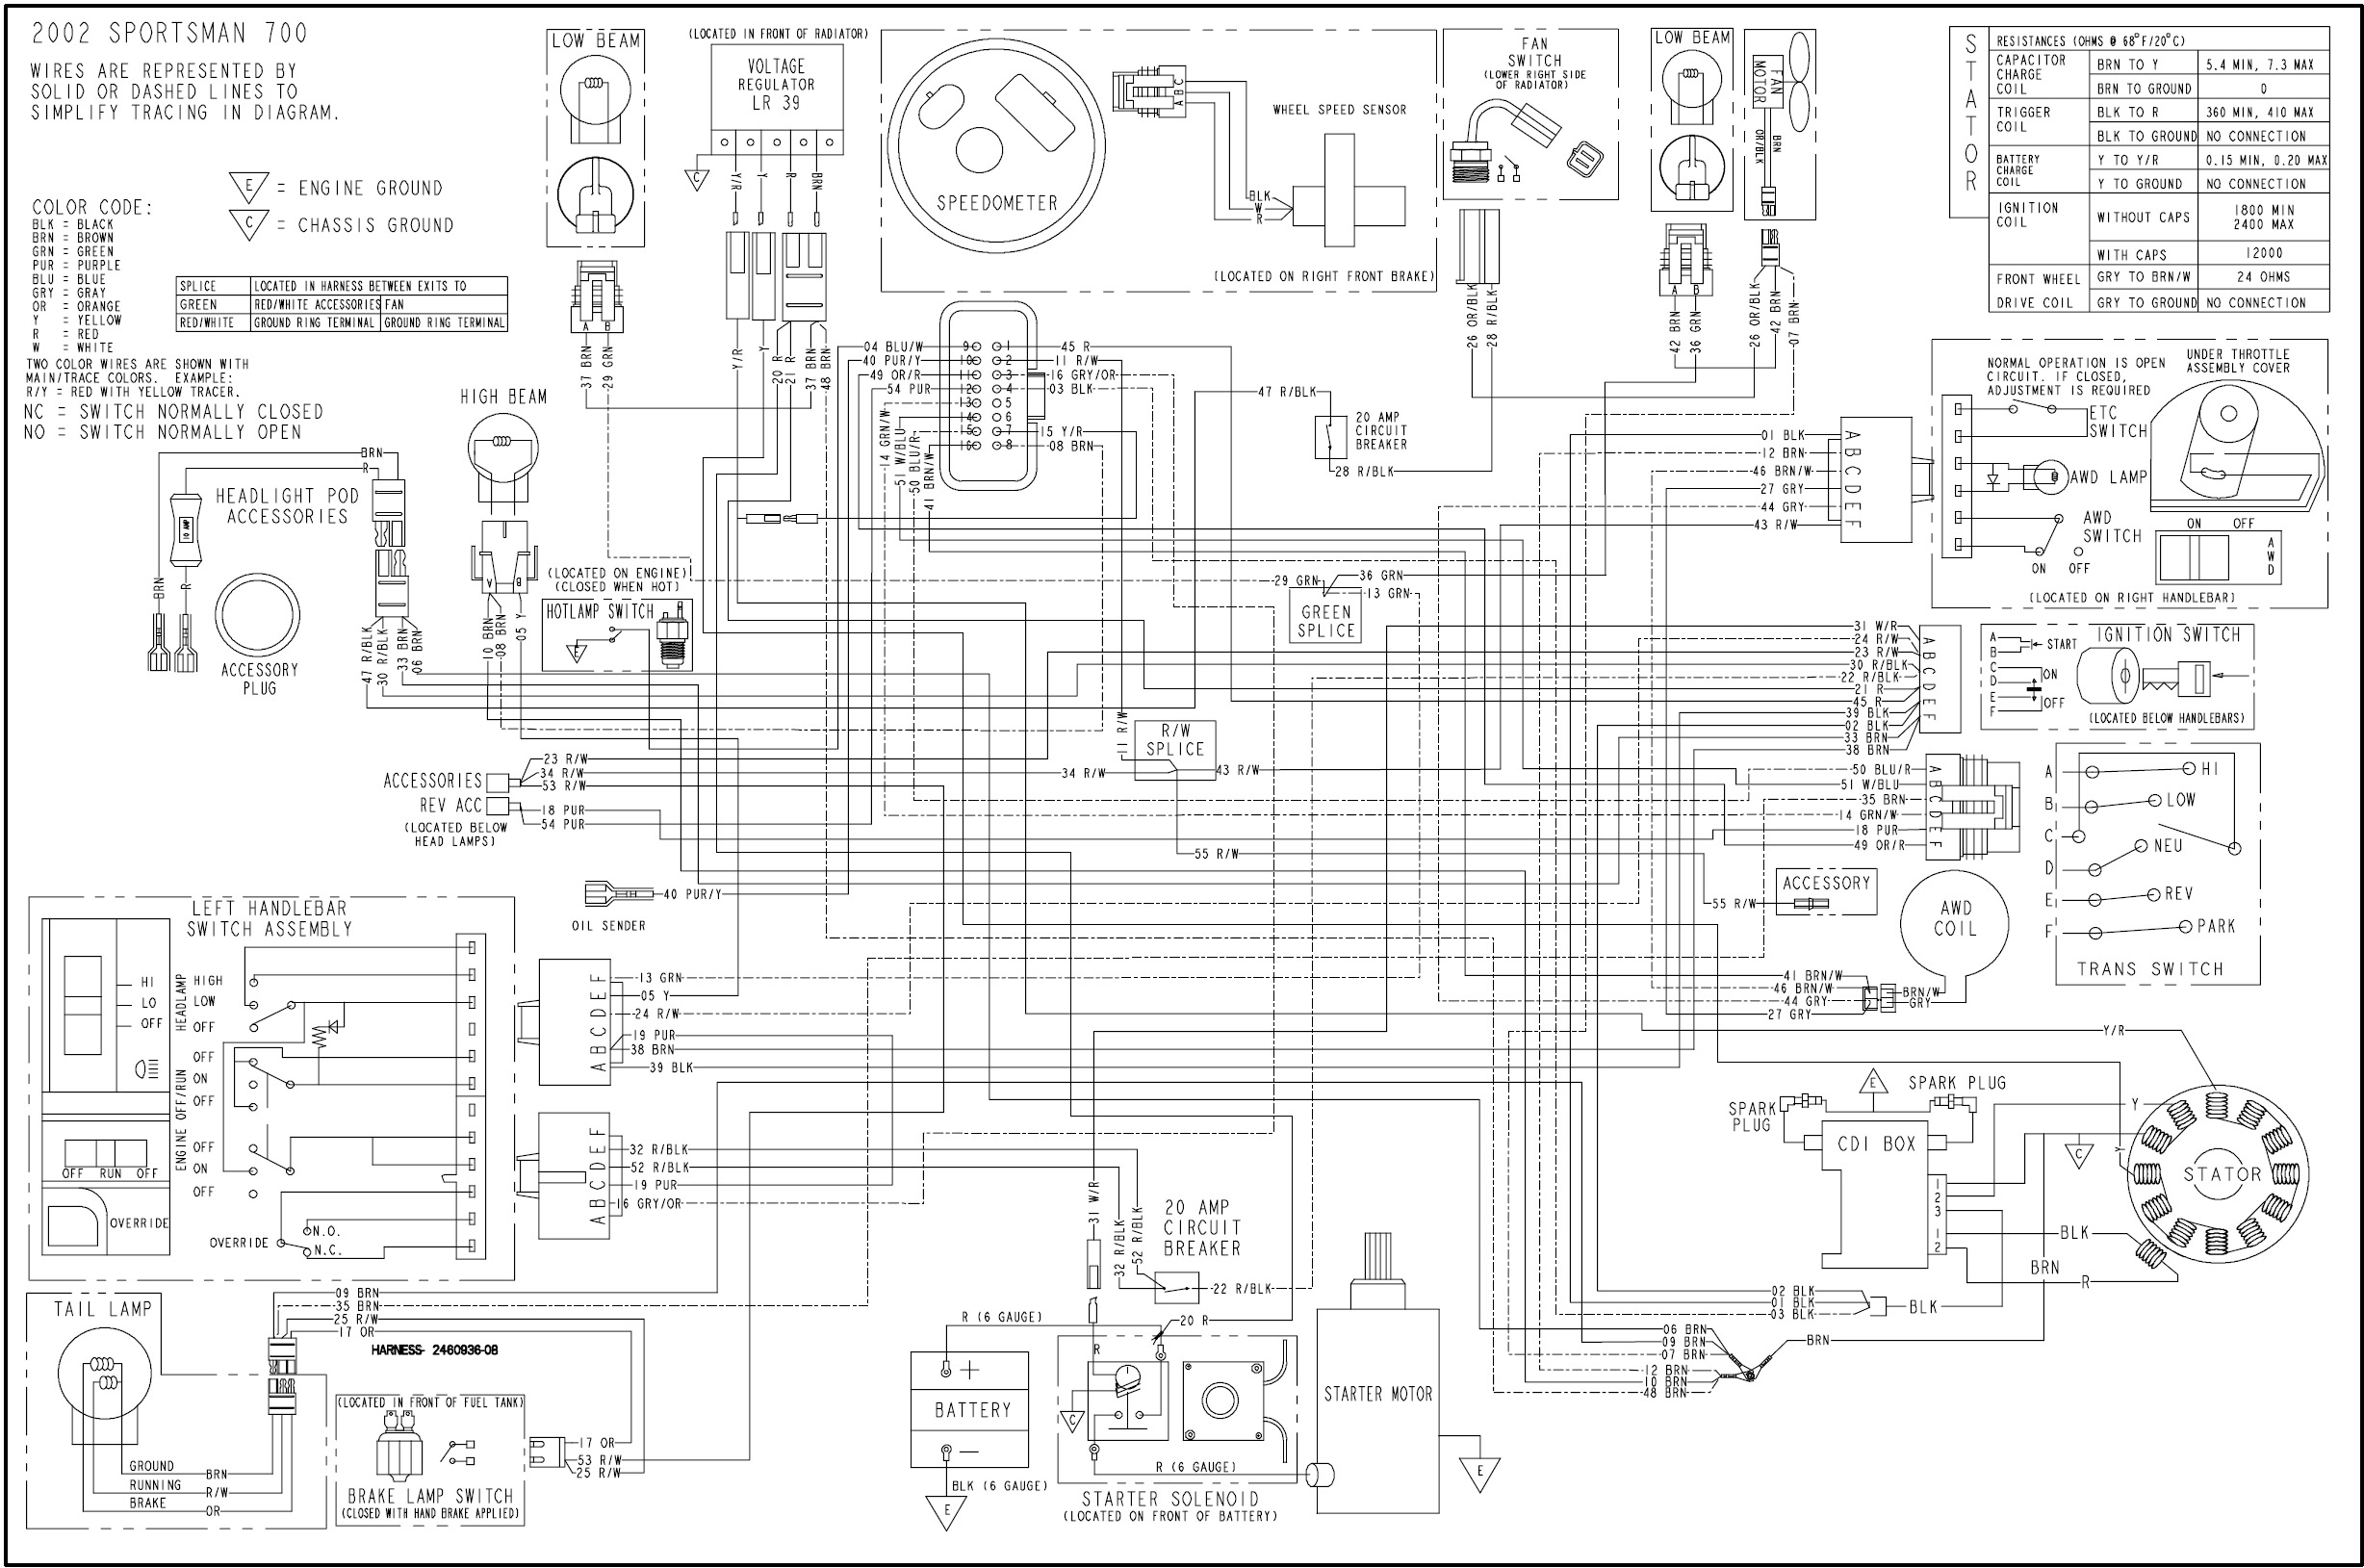 75754d1491234477 2001 sportsman 700 twin no start 2002_polaris_sportsman_700_wiring_diagram polaris wire harness drlete,wire \u2022 j squared co polaris sportsman 700 wiring diagram at cos-gaming.co